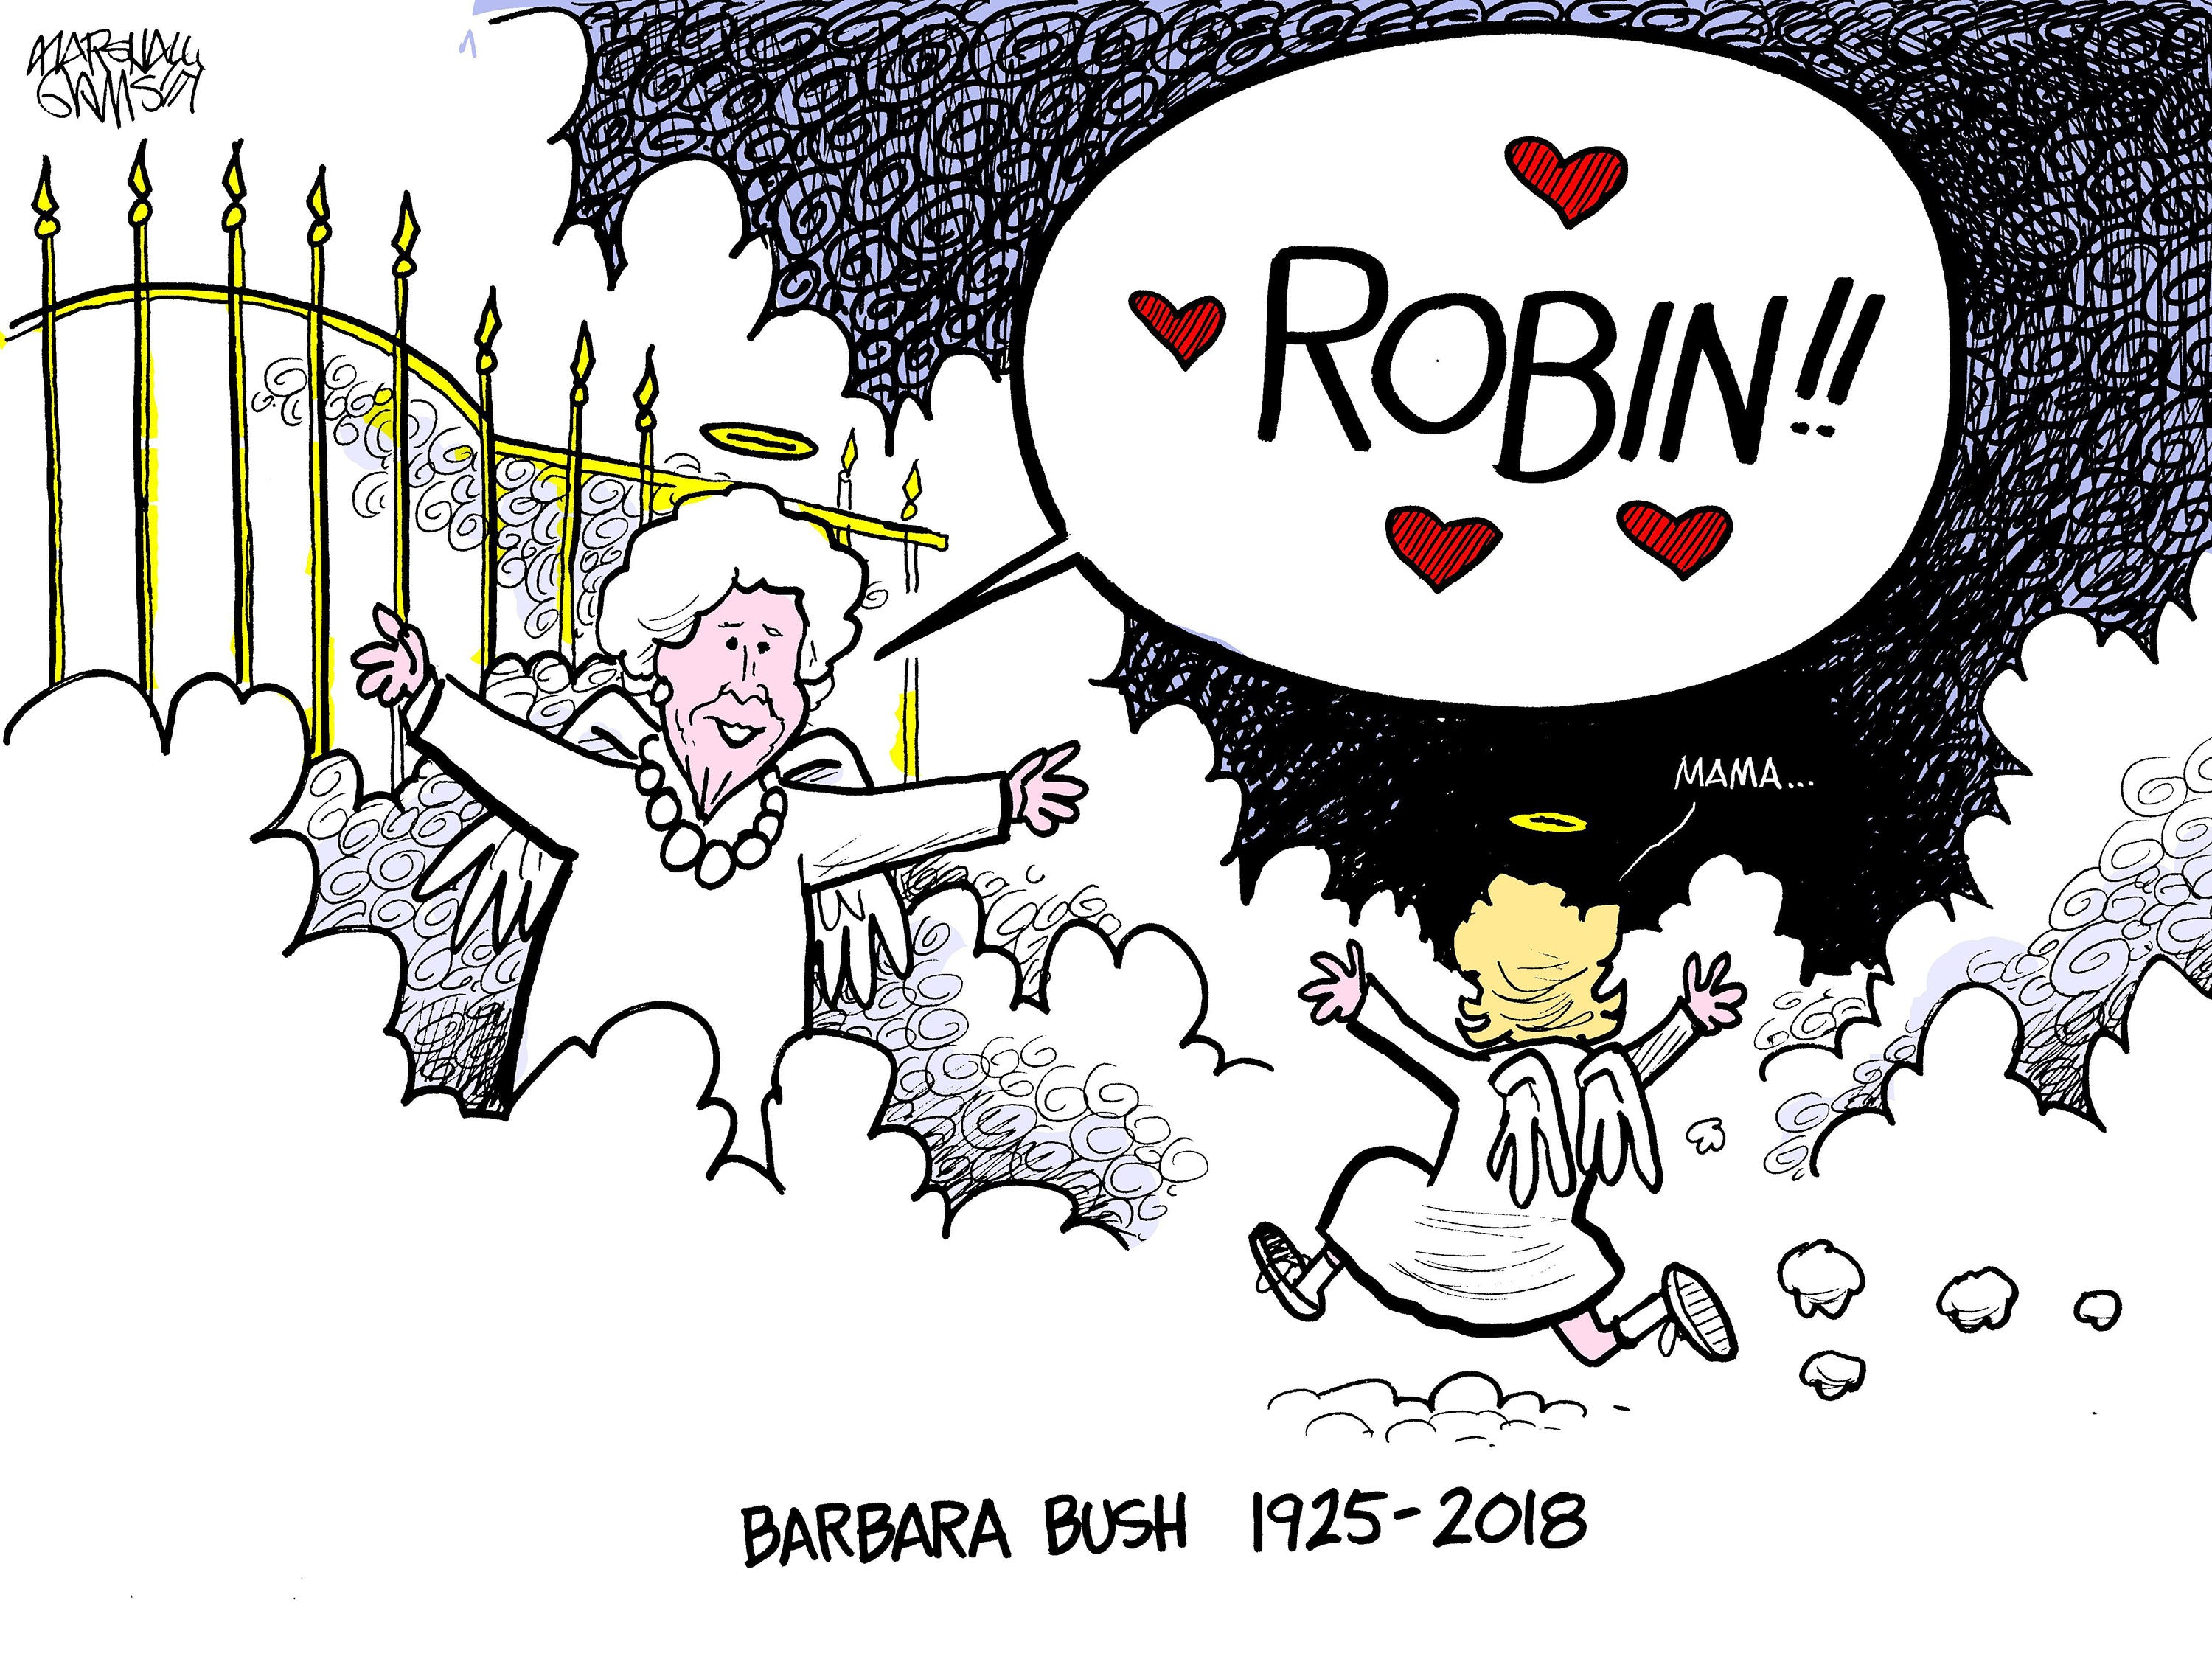 How the Barbara Bush cartoon took on a life of its own